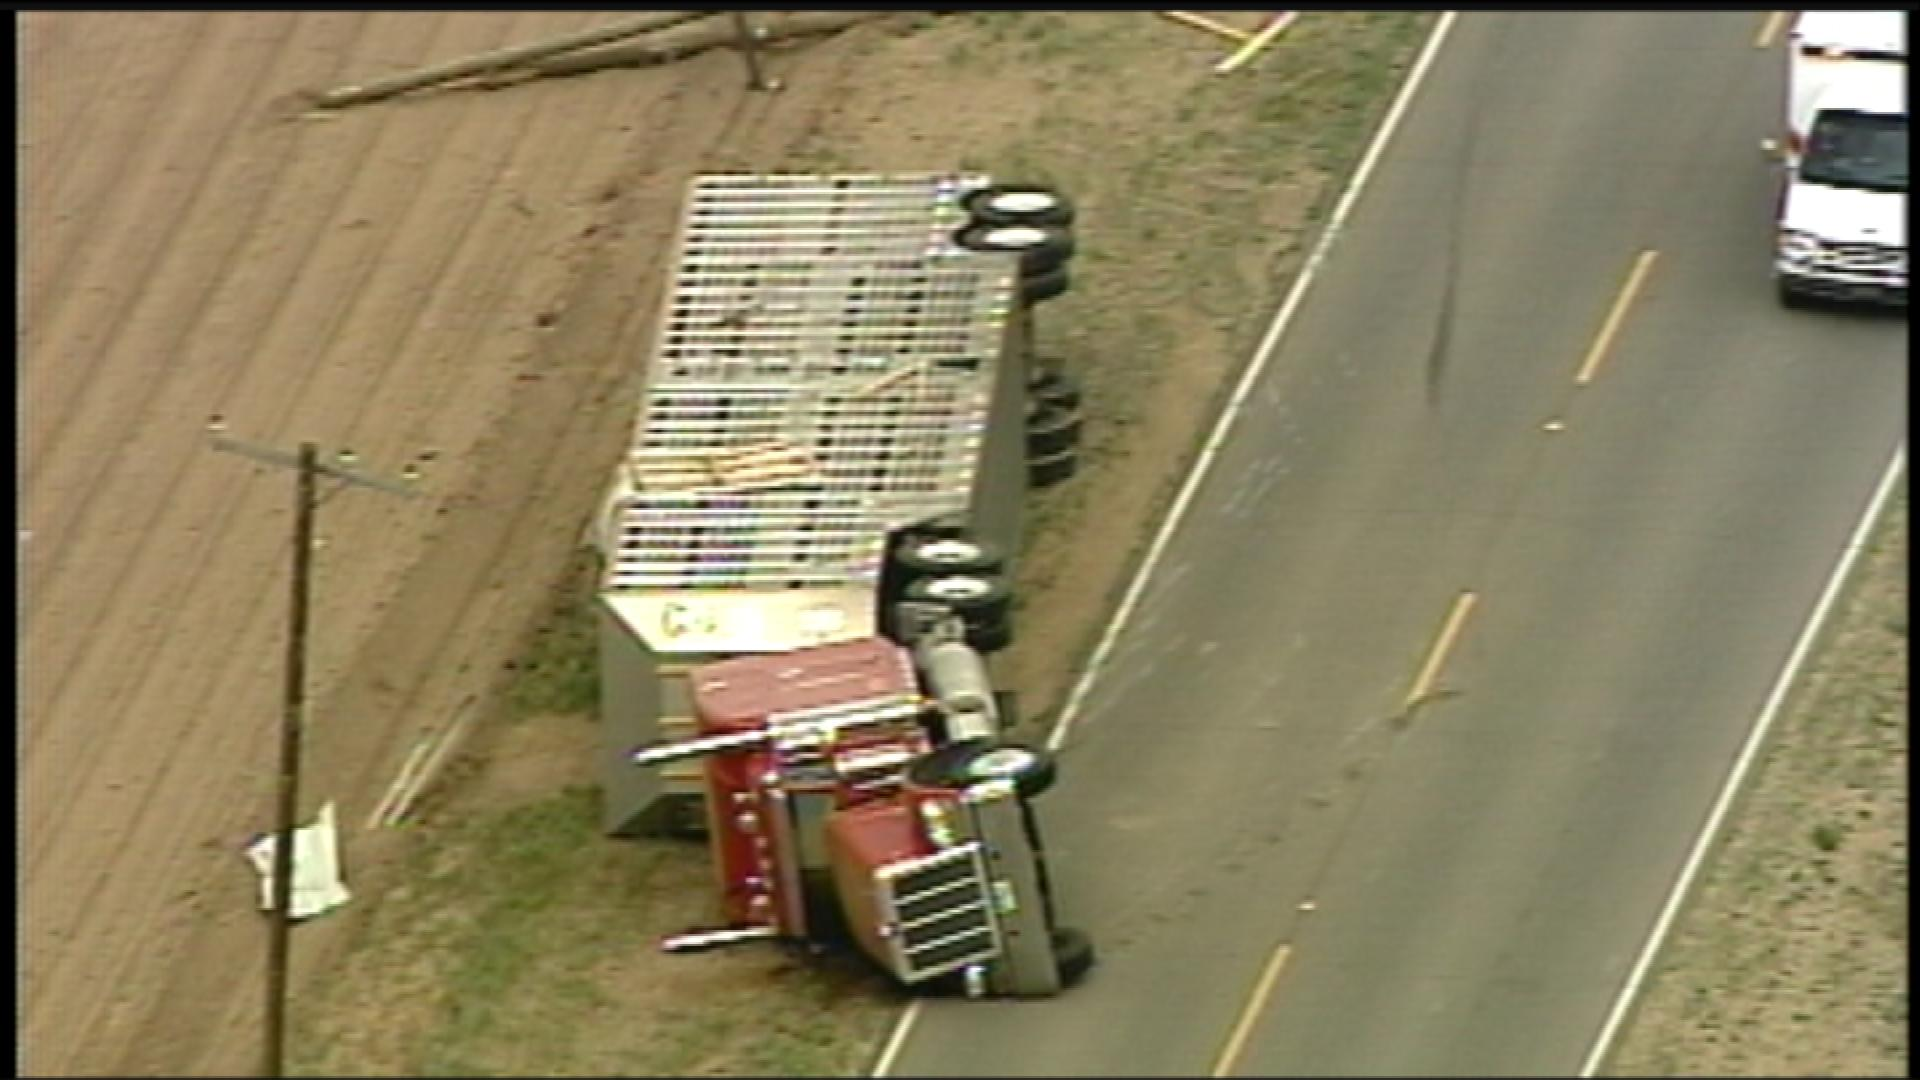 Semis were overturned during a strong tornado that hit Northern Colorado on May 22, 2008.(credit: CBS)